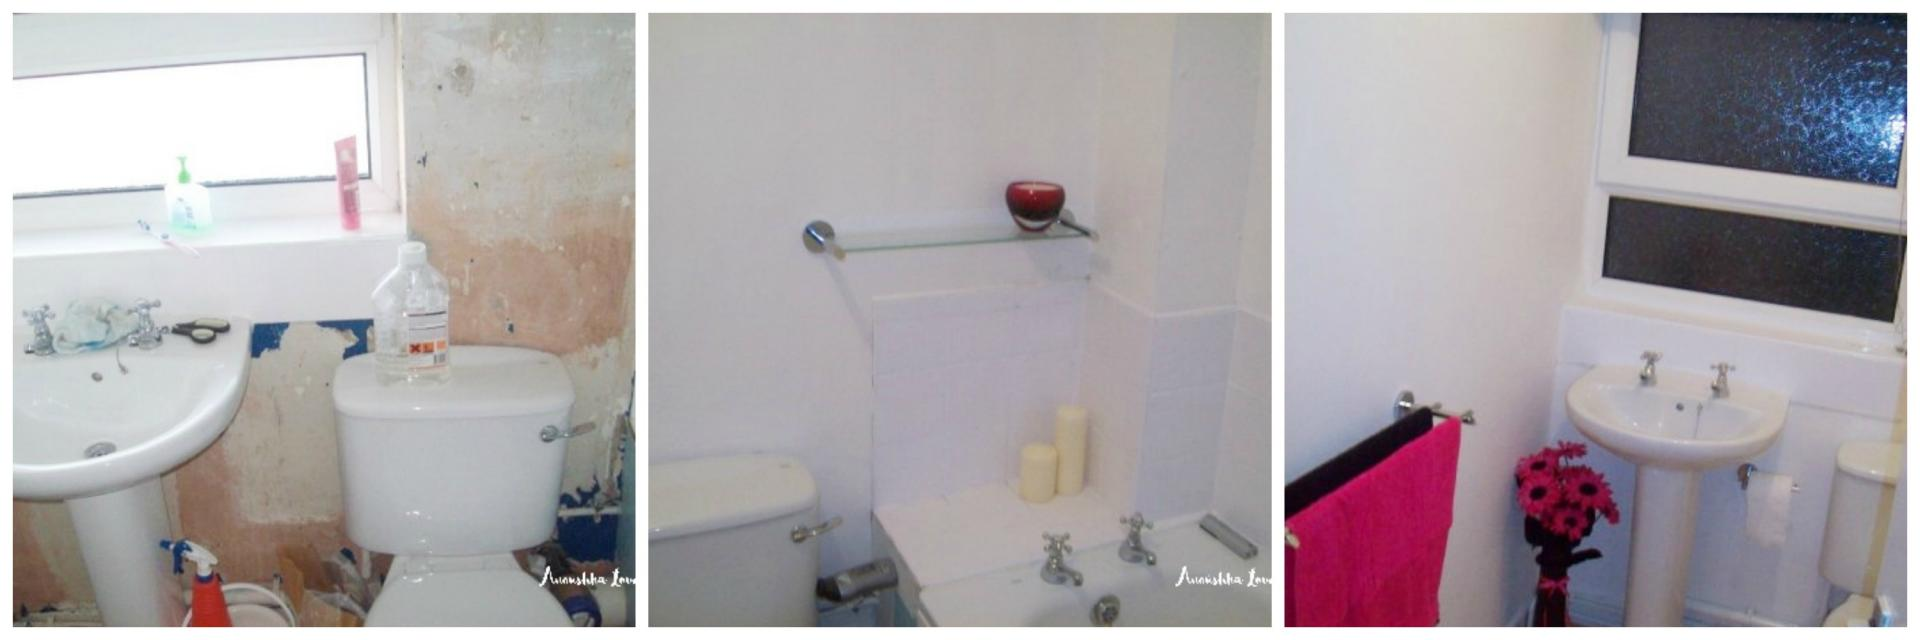 Redecorating bathroom interior design for Redecorating a small bathroom